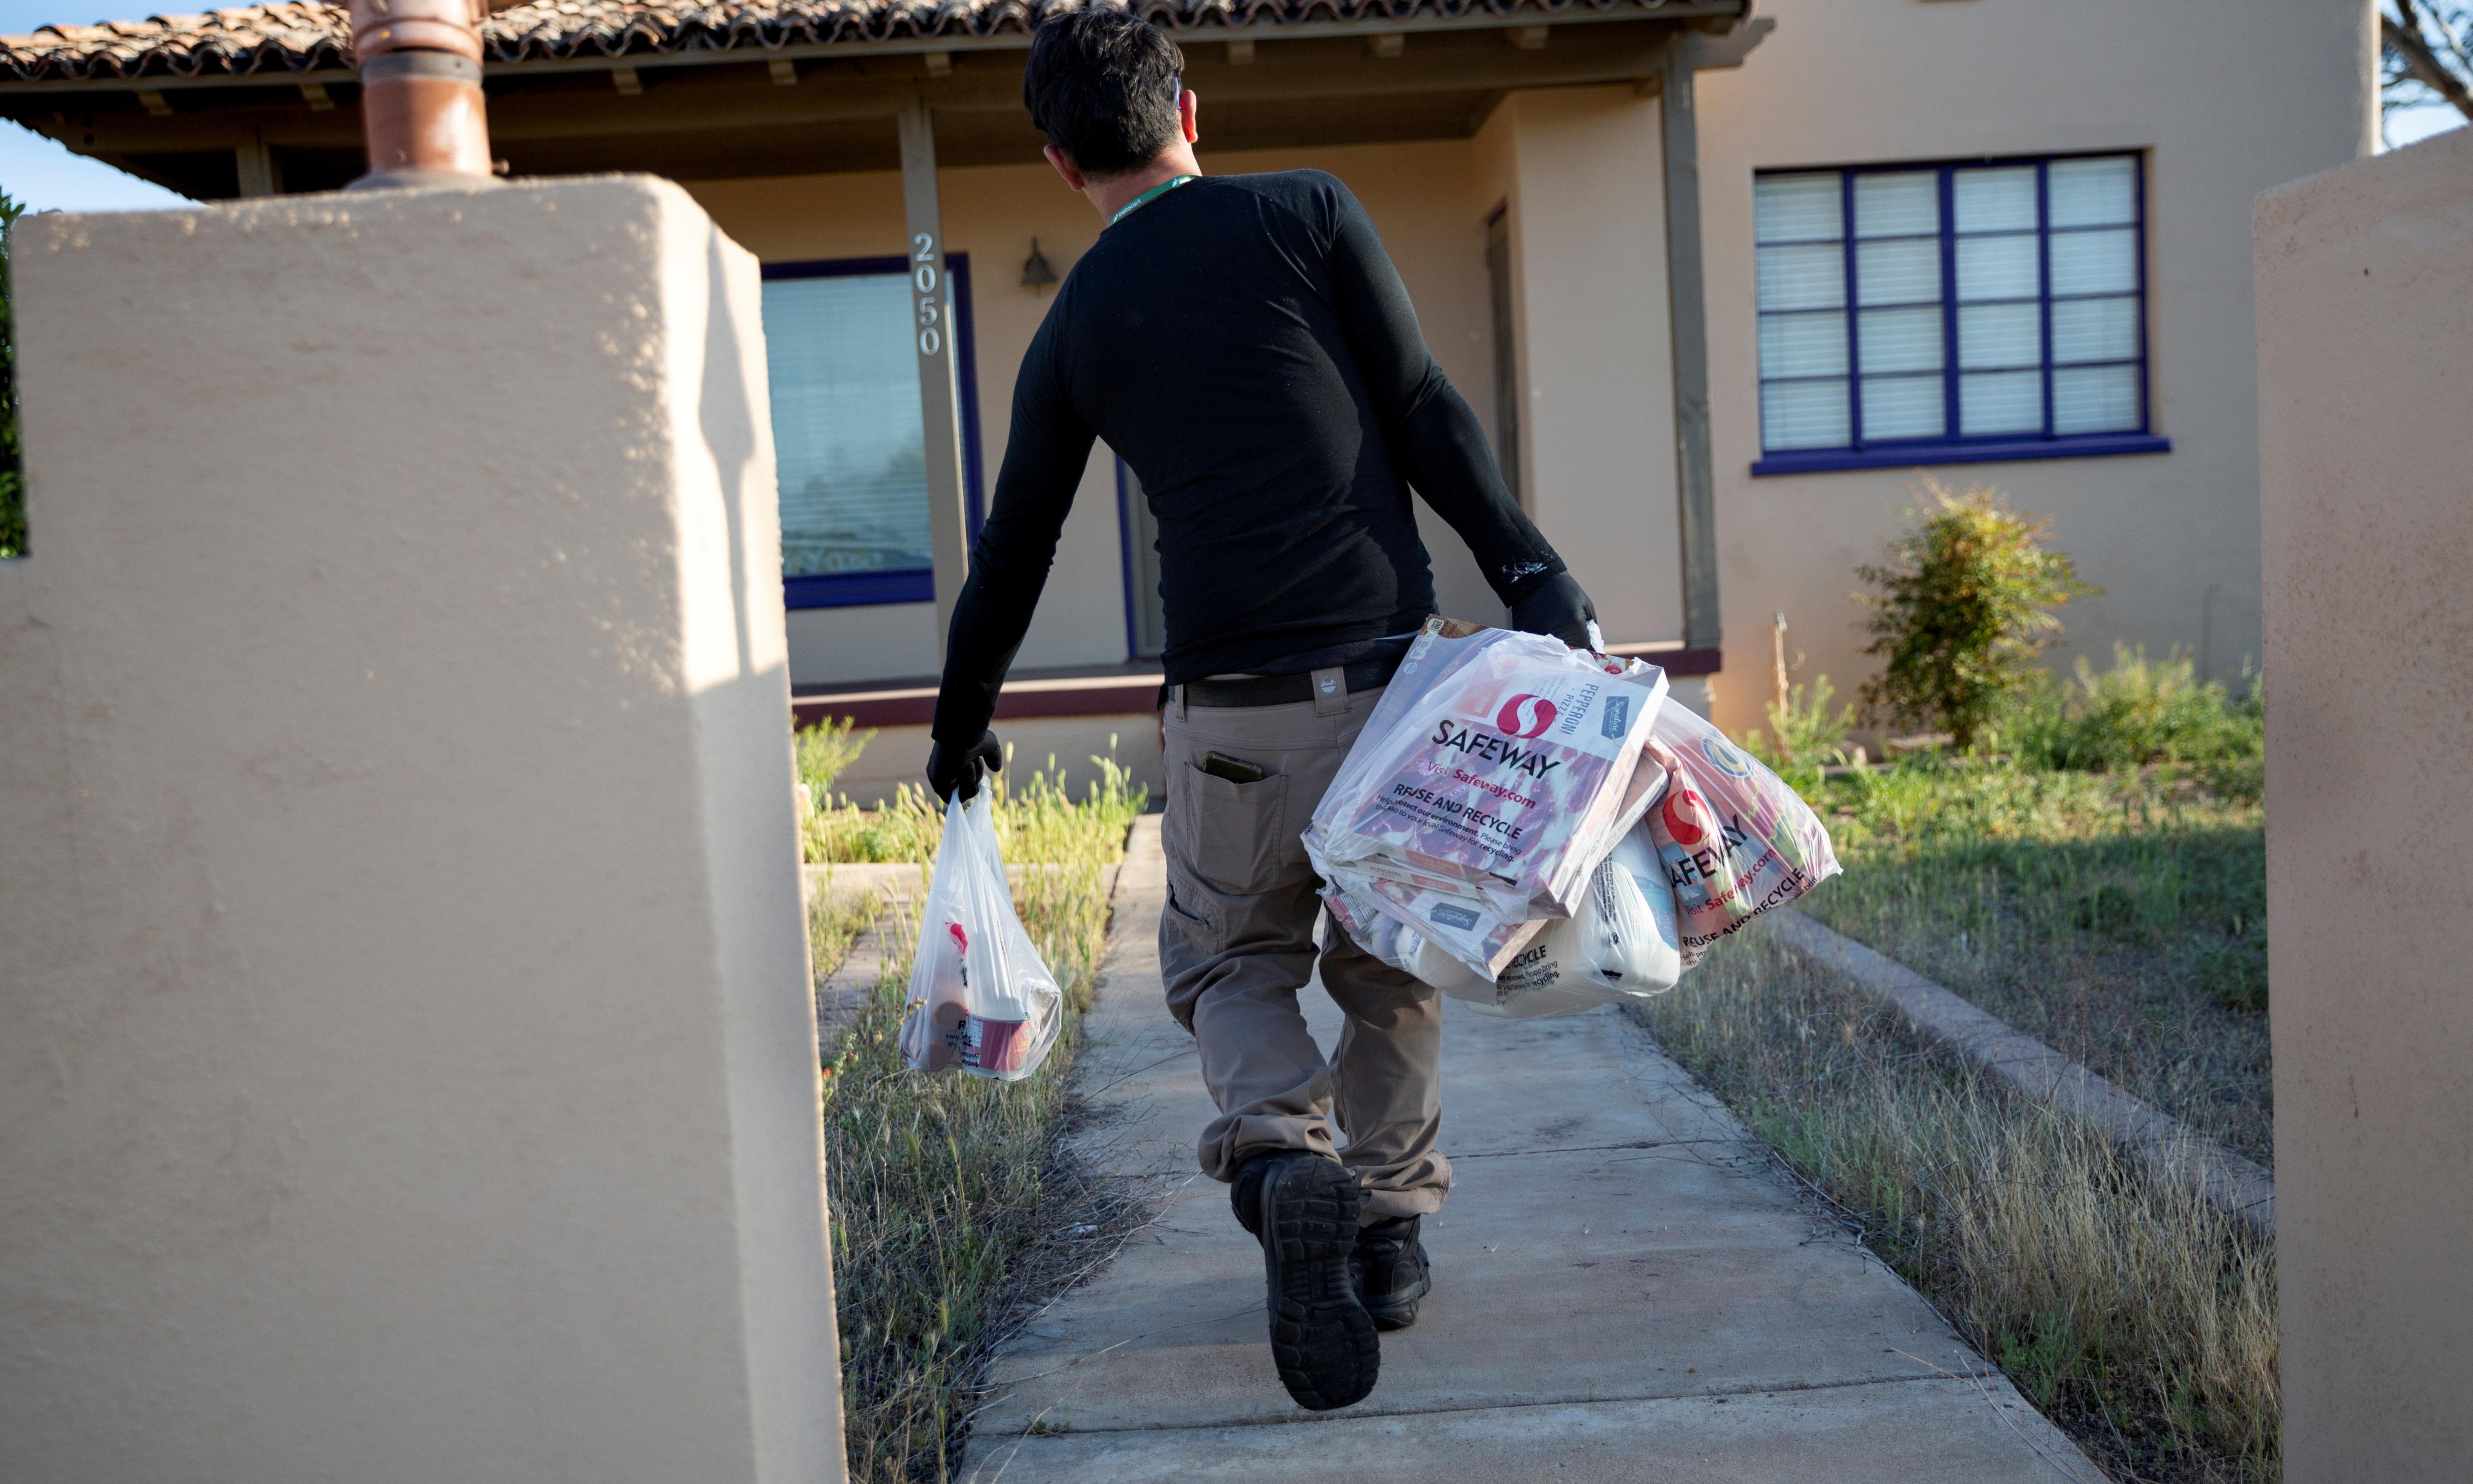 Instacart employee Eric Cohn, 34, delivers groceries to a residence while wearing a respirator mask.